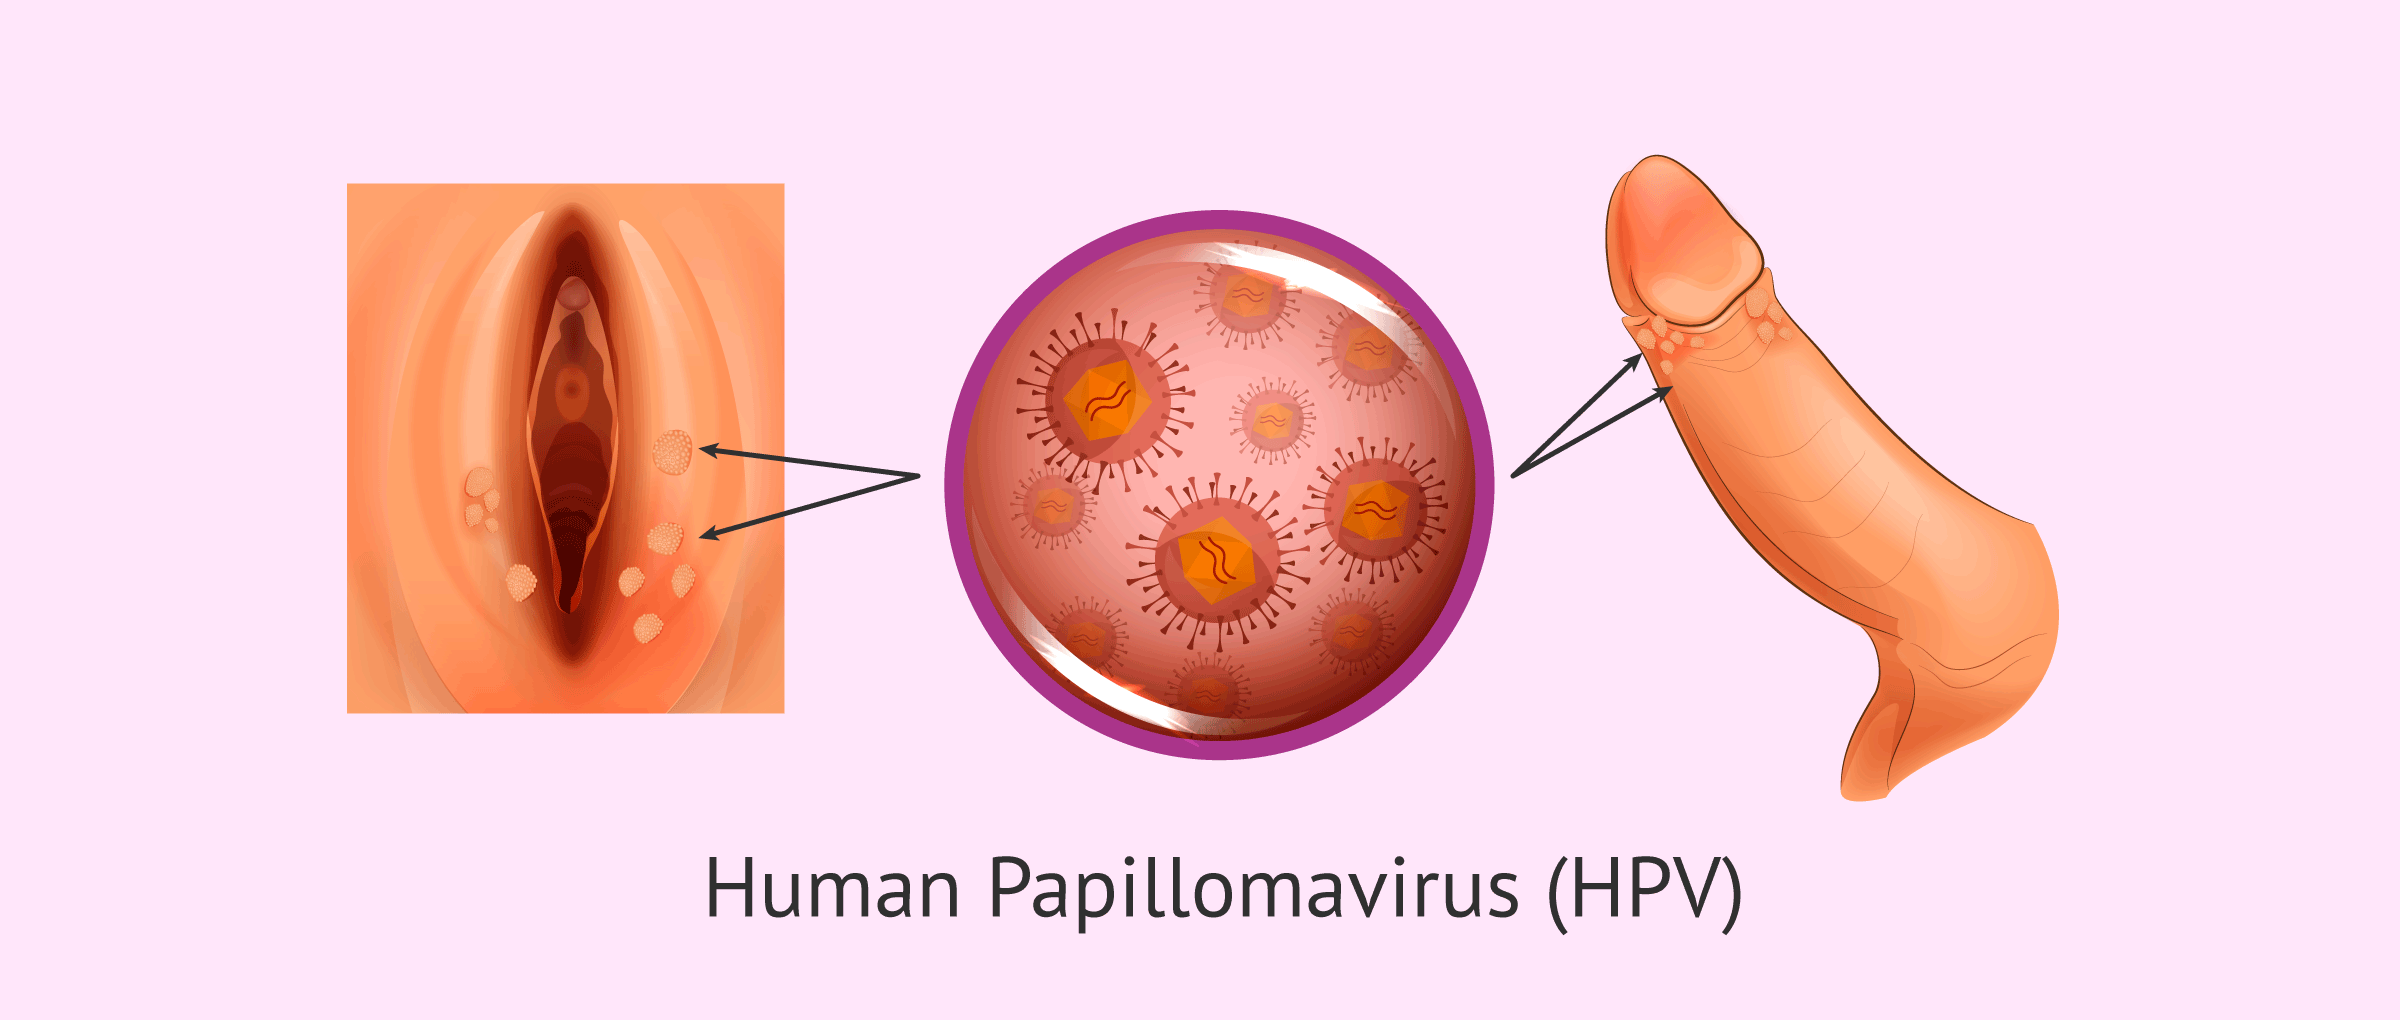 Hpv and genital wart. Papillomas of the Larynx and Trachea papilloma on feet